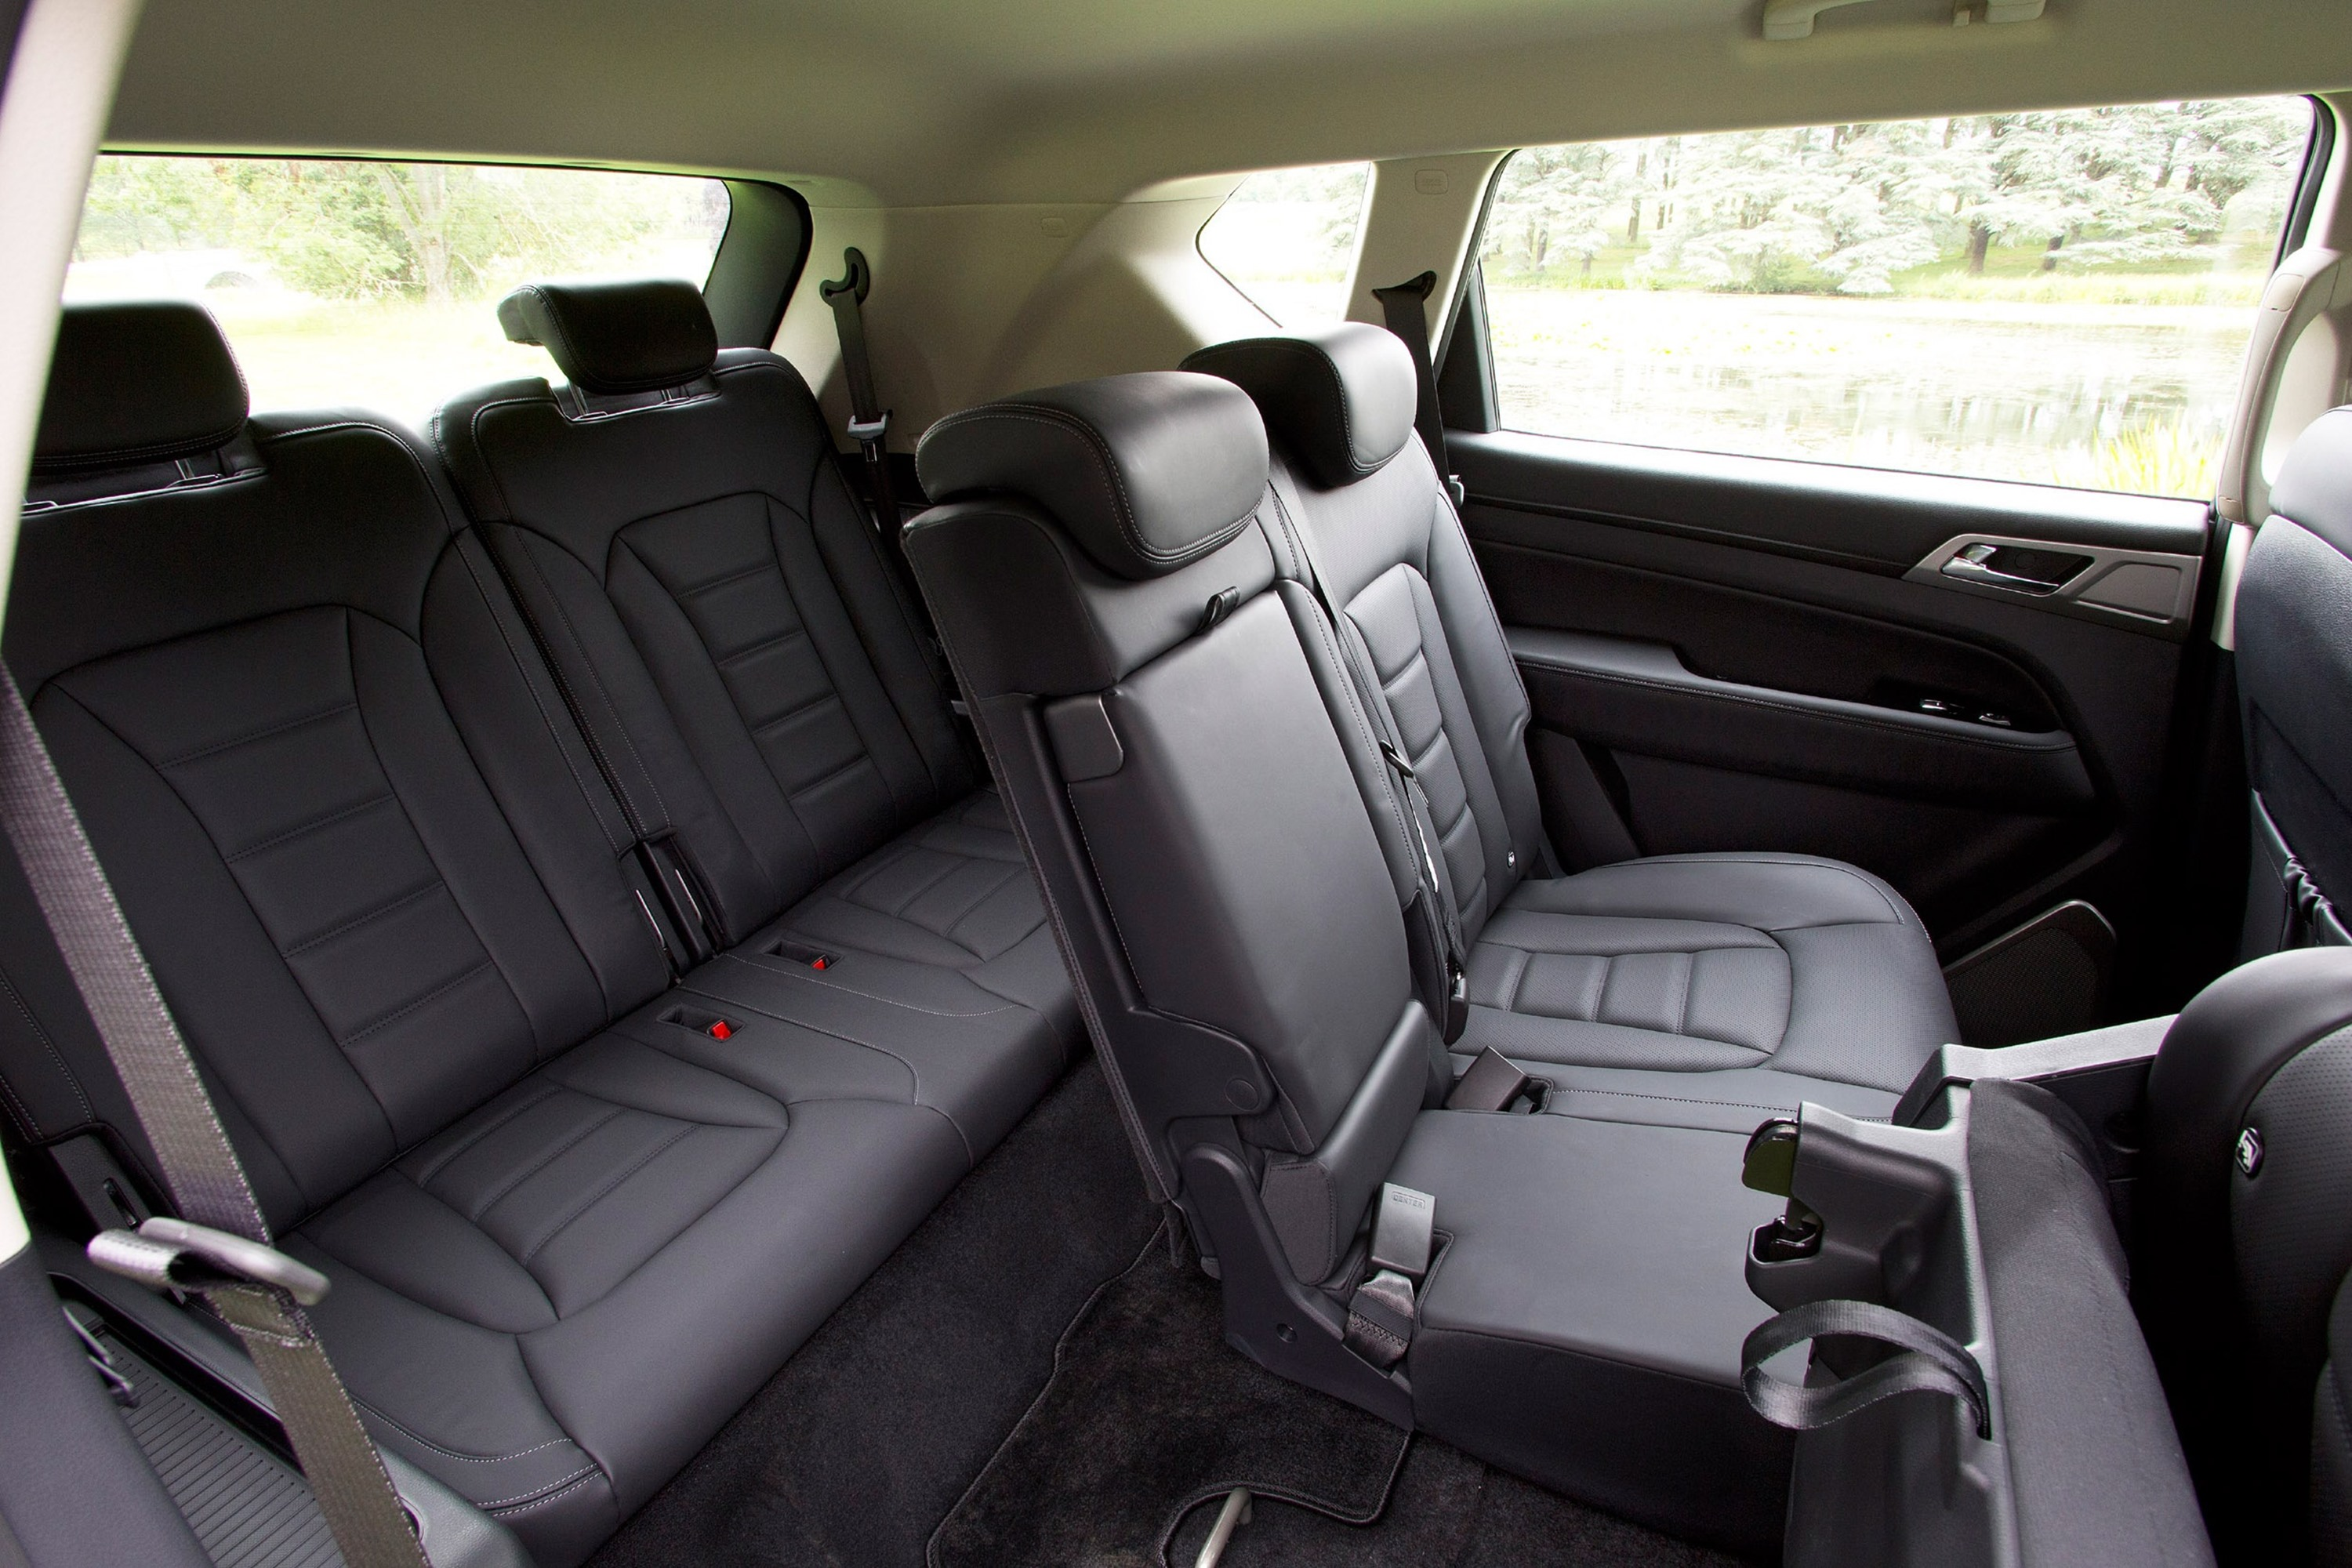 2018 SsangYong Rexton rear seats